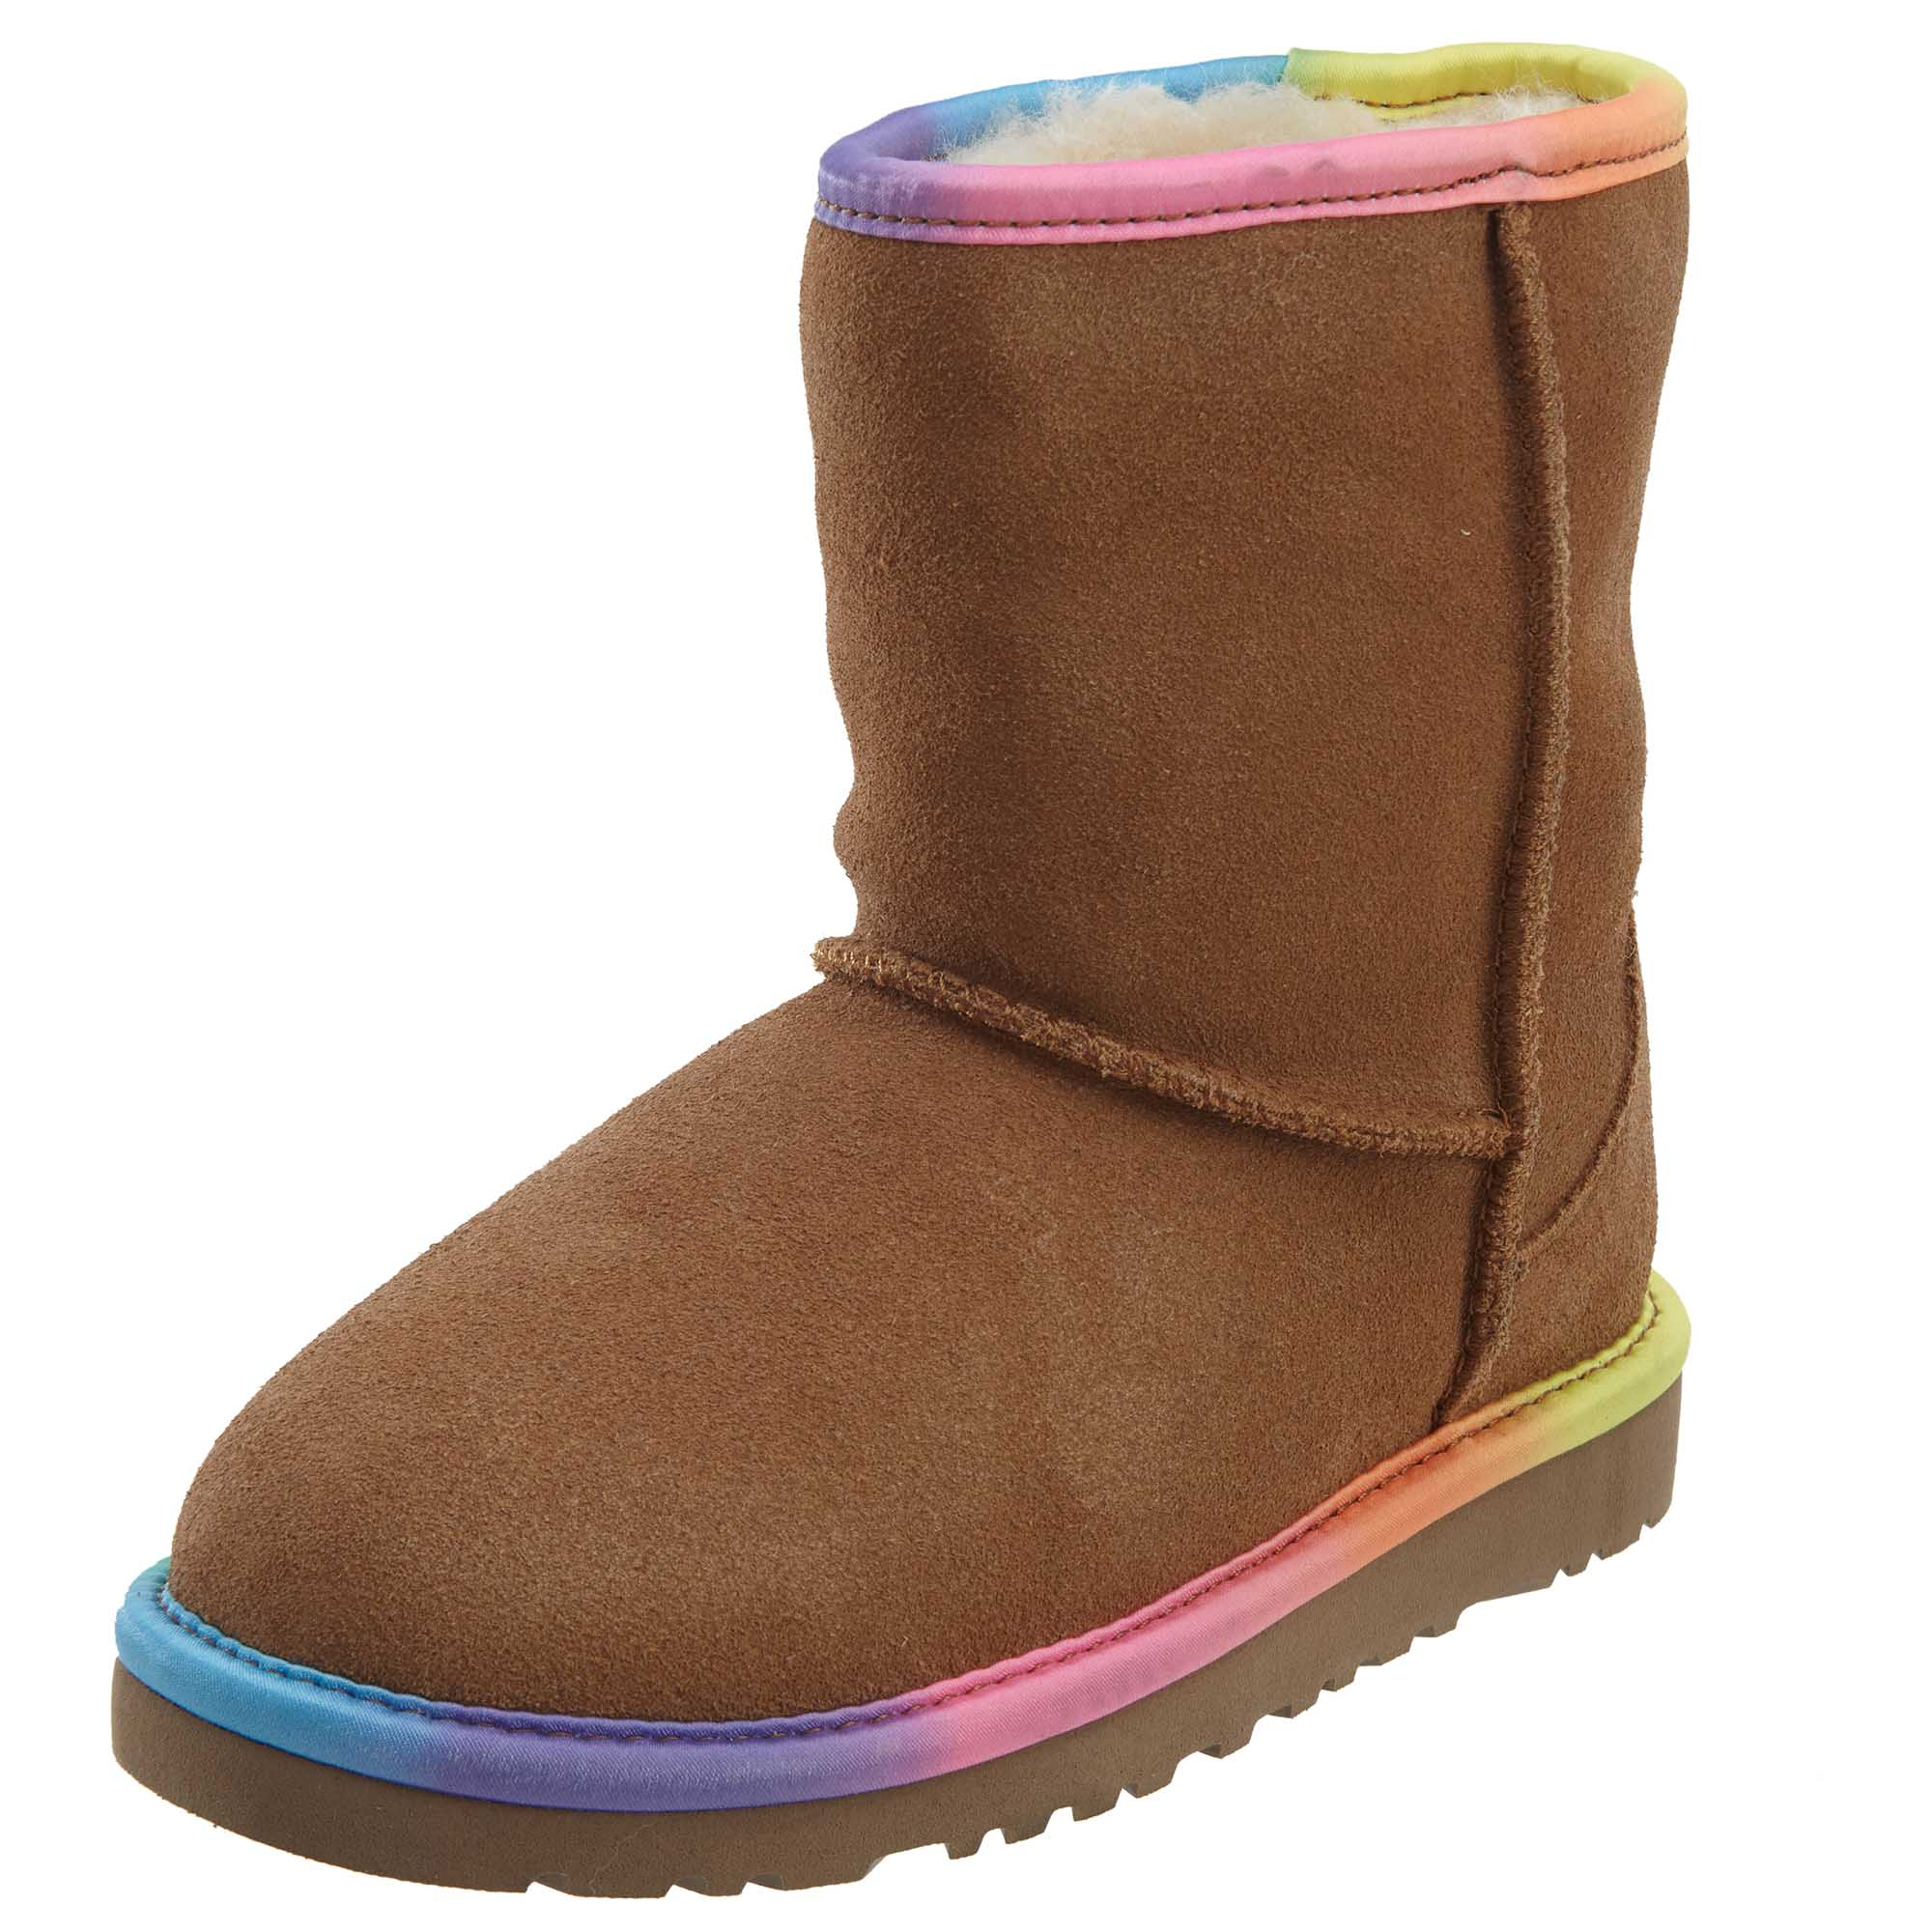 Ugg Classic Short Rainbow Boots Toddlers Style : 1006063t